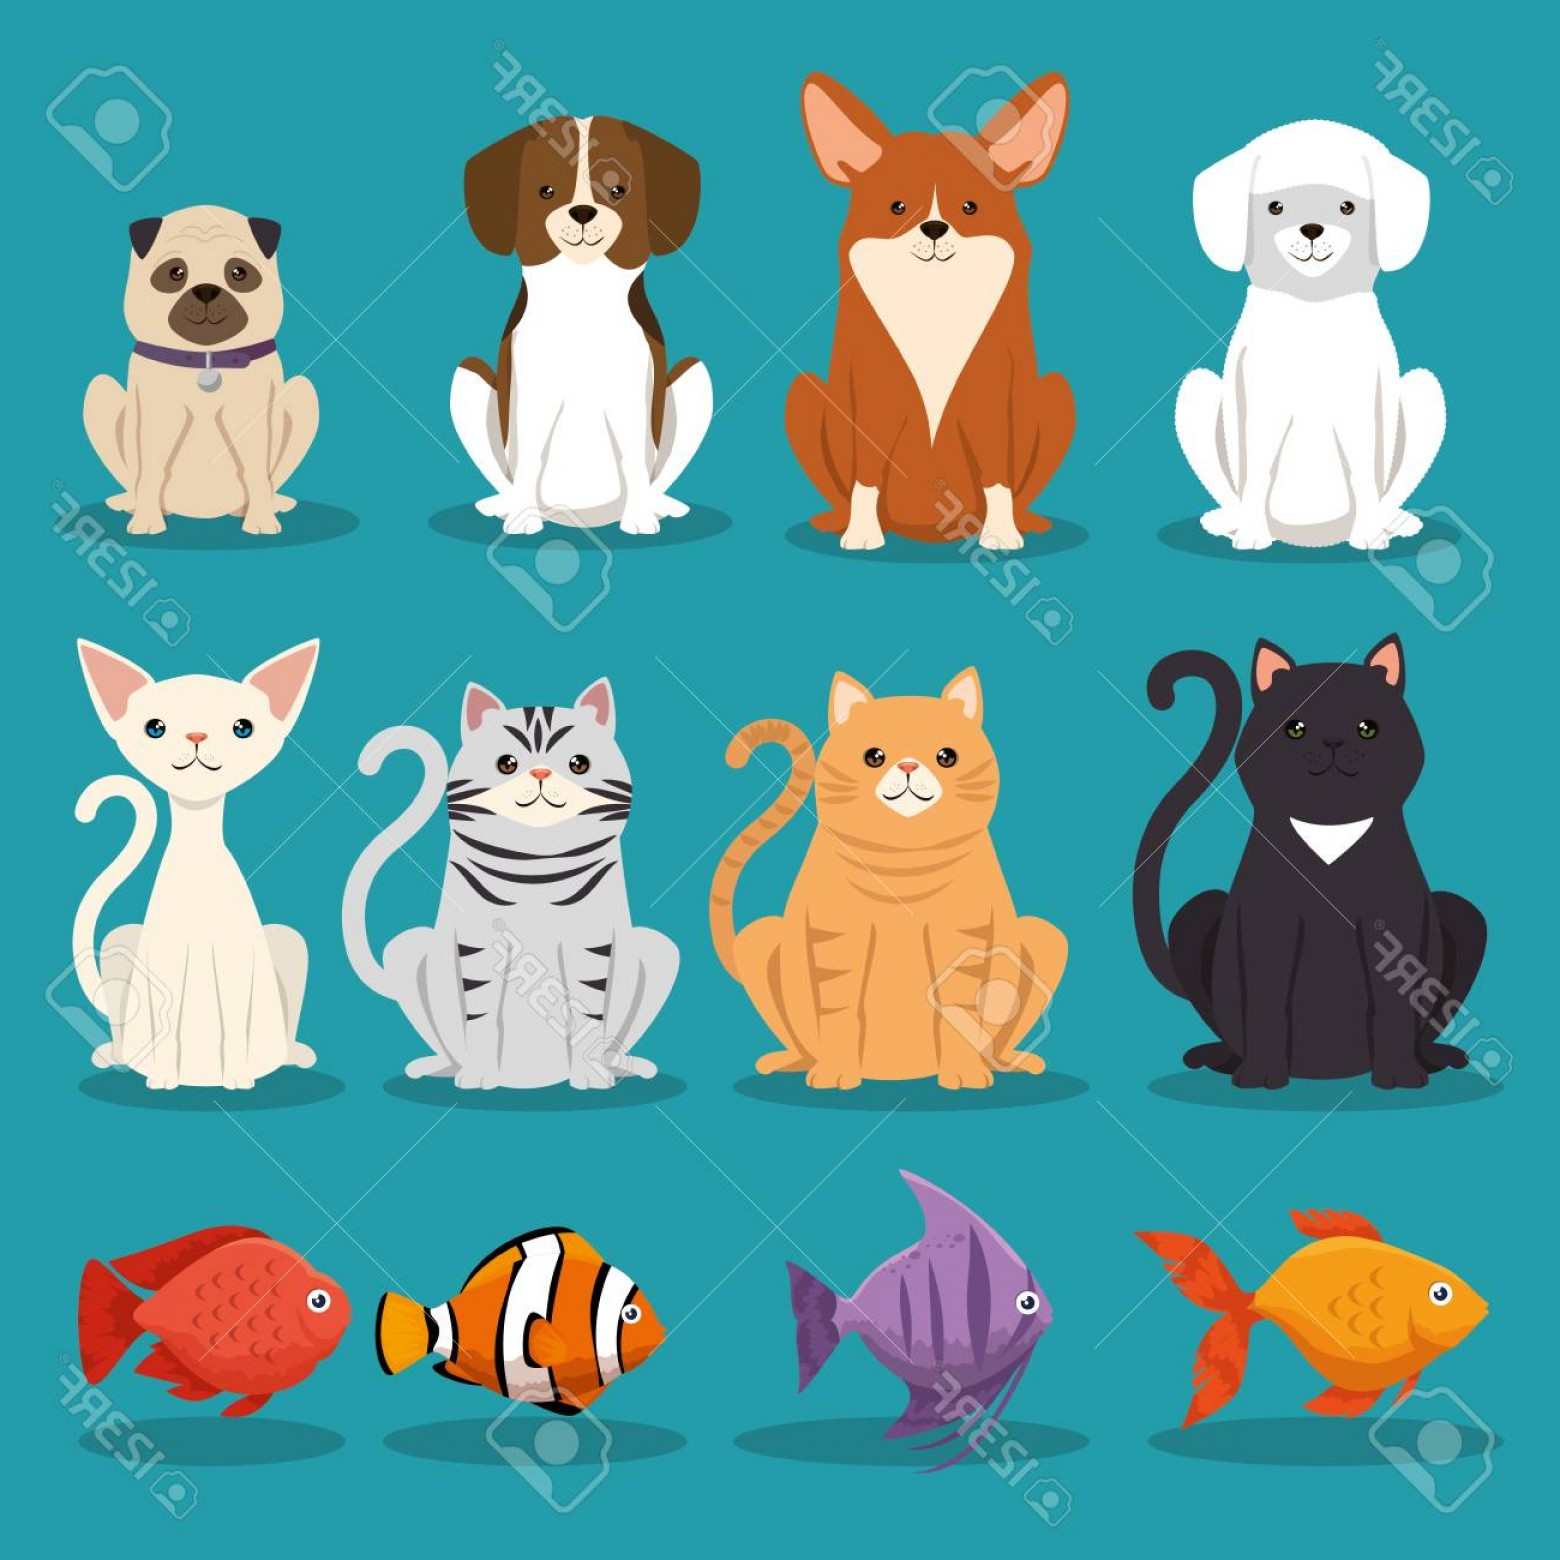 Dog And Cat Vector Illustration: Photostock Vector Dogs Cats And Fish Pets Characters Vector Illustration Design